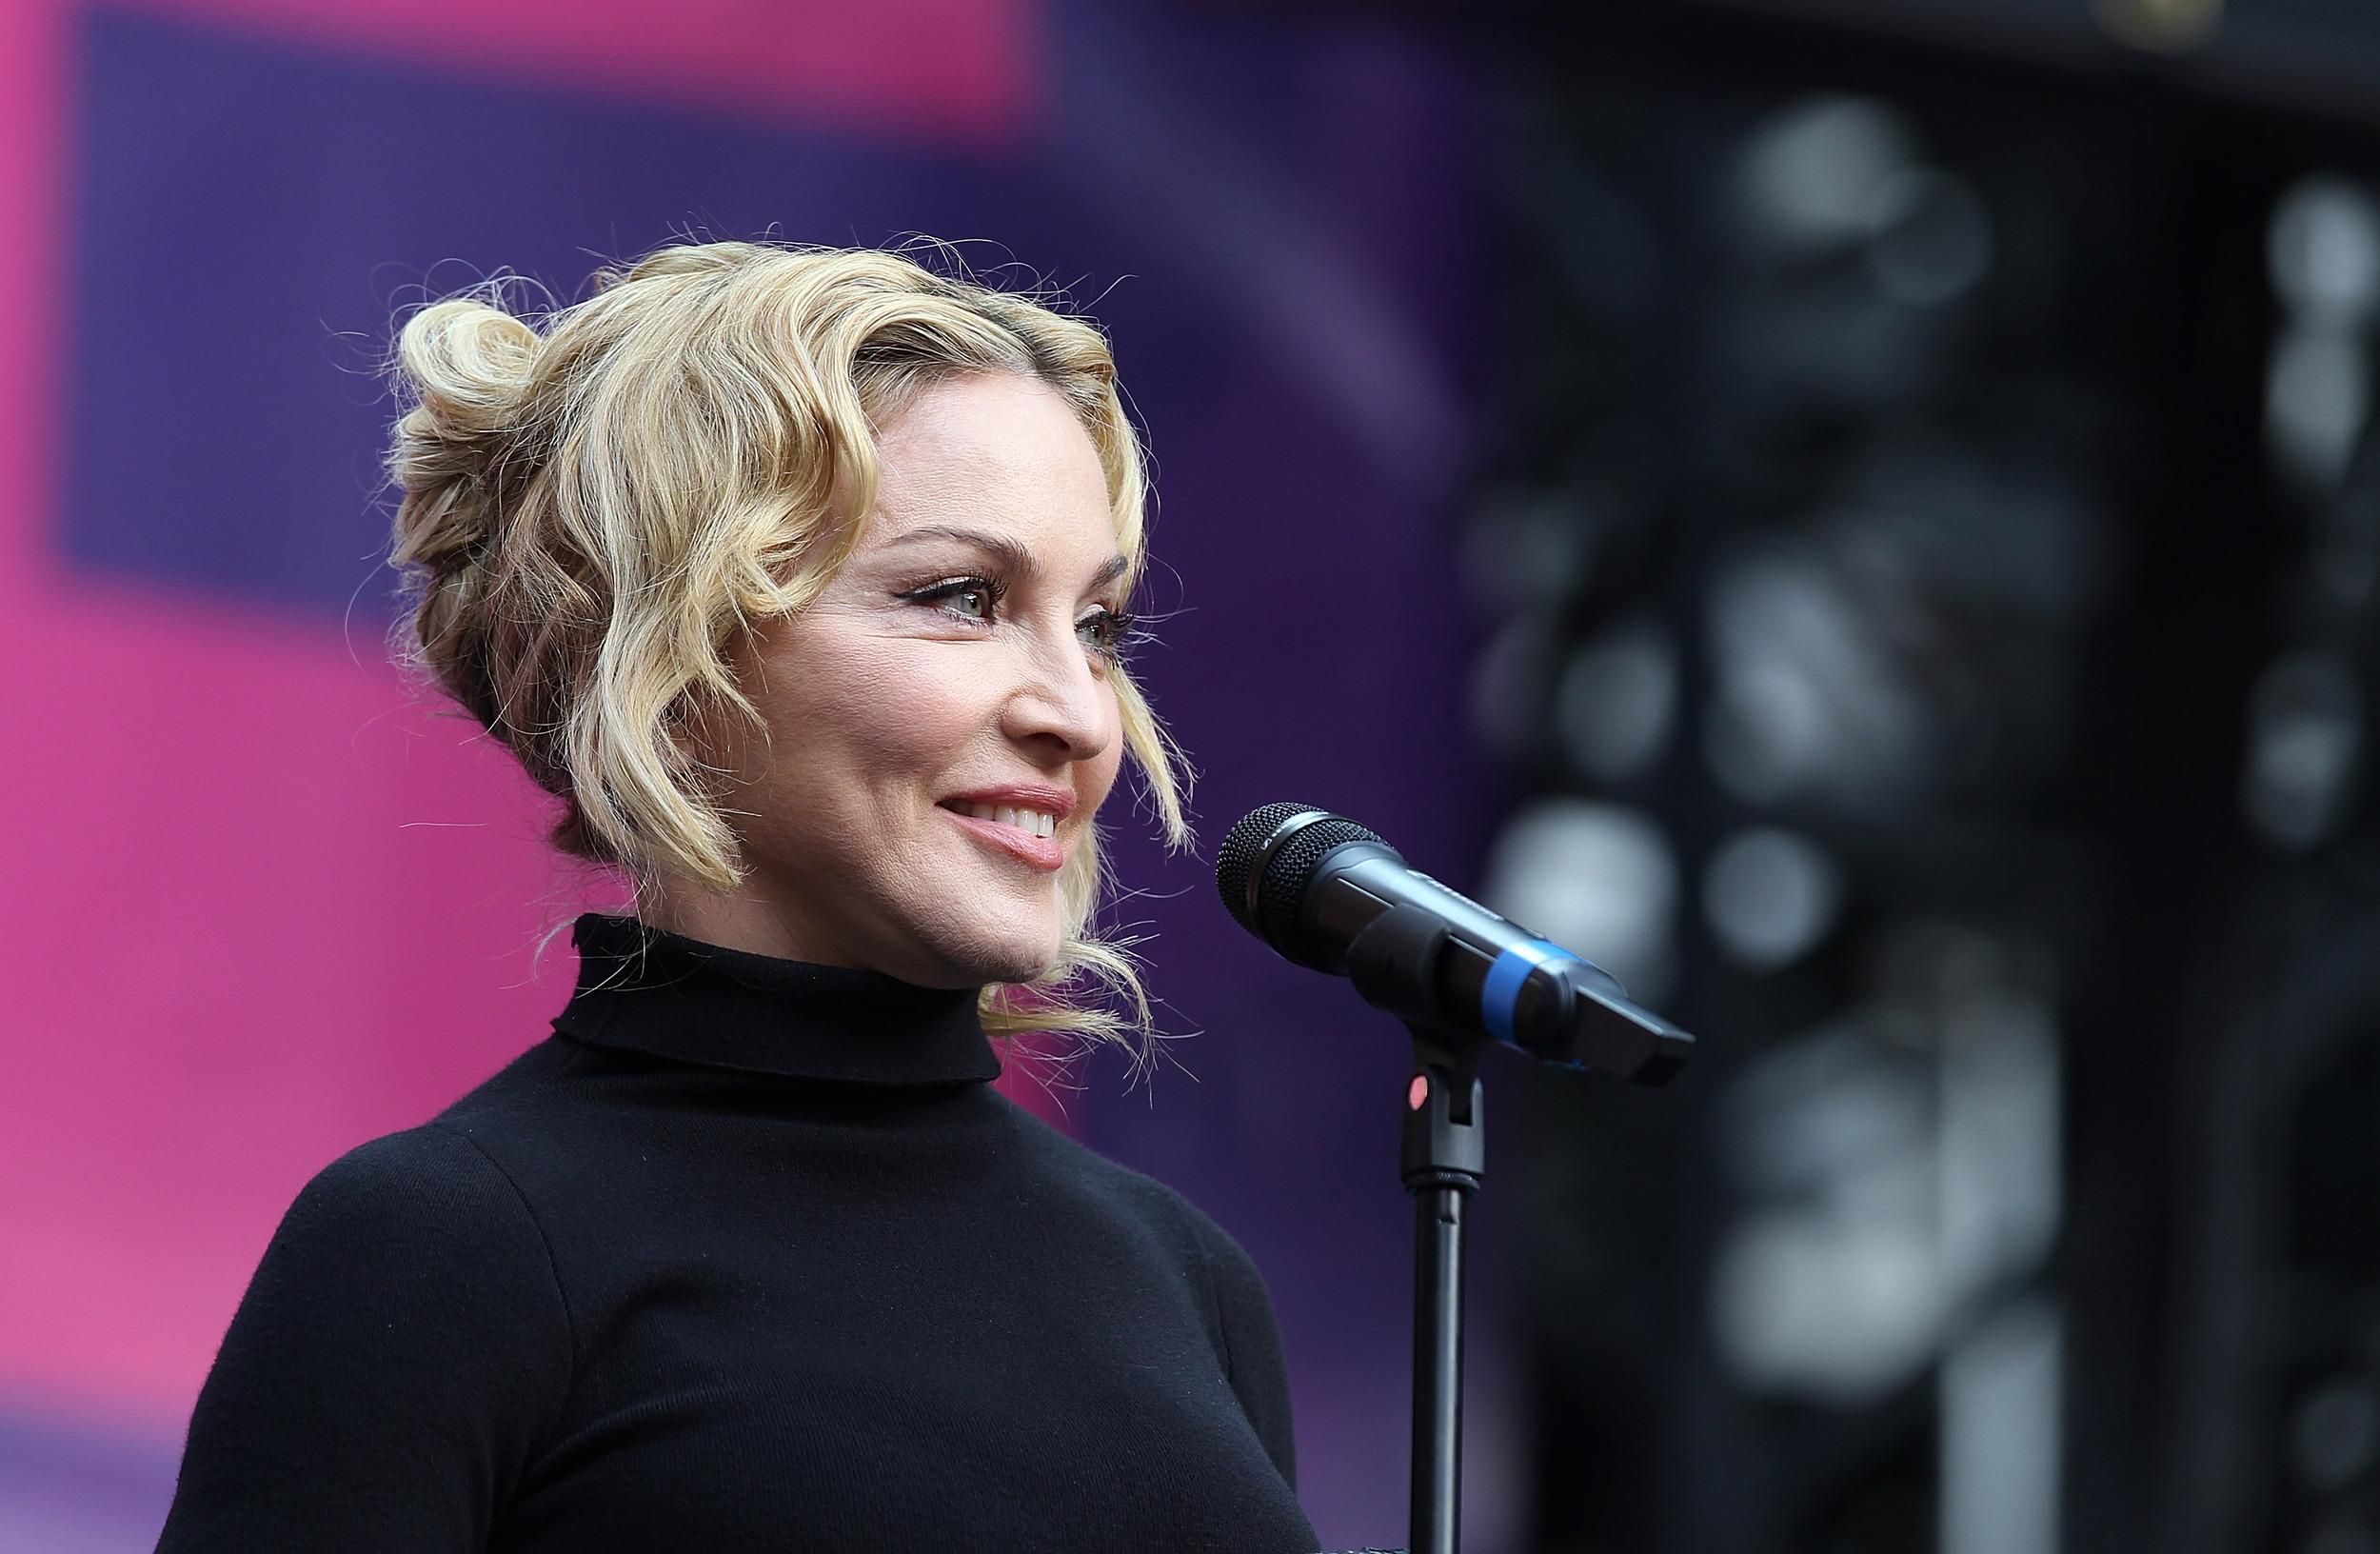 At the age of 55, critics have been insisting that her finest days were two decades behind her. Her latest album sold fewer than 1 million copies, and her recent singles have failed to make the impression they once did.<br /> <br /> But Madonna has silenced the critics - raking in an astonishing $125 million in one year. That's $25 million more than her nearest rival. Her $305 million wold tour was the major money maker, but her fashion and perfume brands helped too.<br /> <br /> This is Madonna's biggest-earning year of all time - surpassing her previous record in 2009 of $110 million.